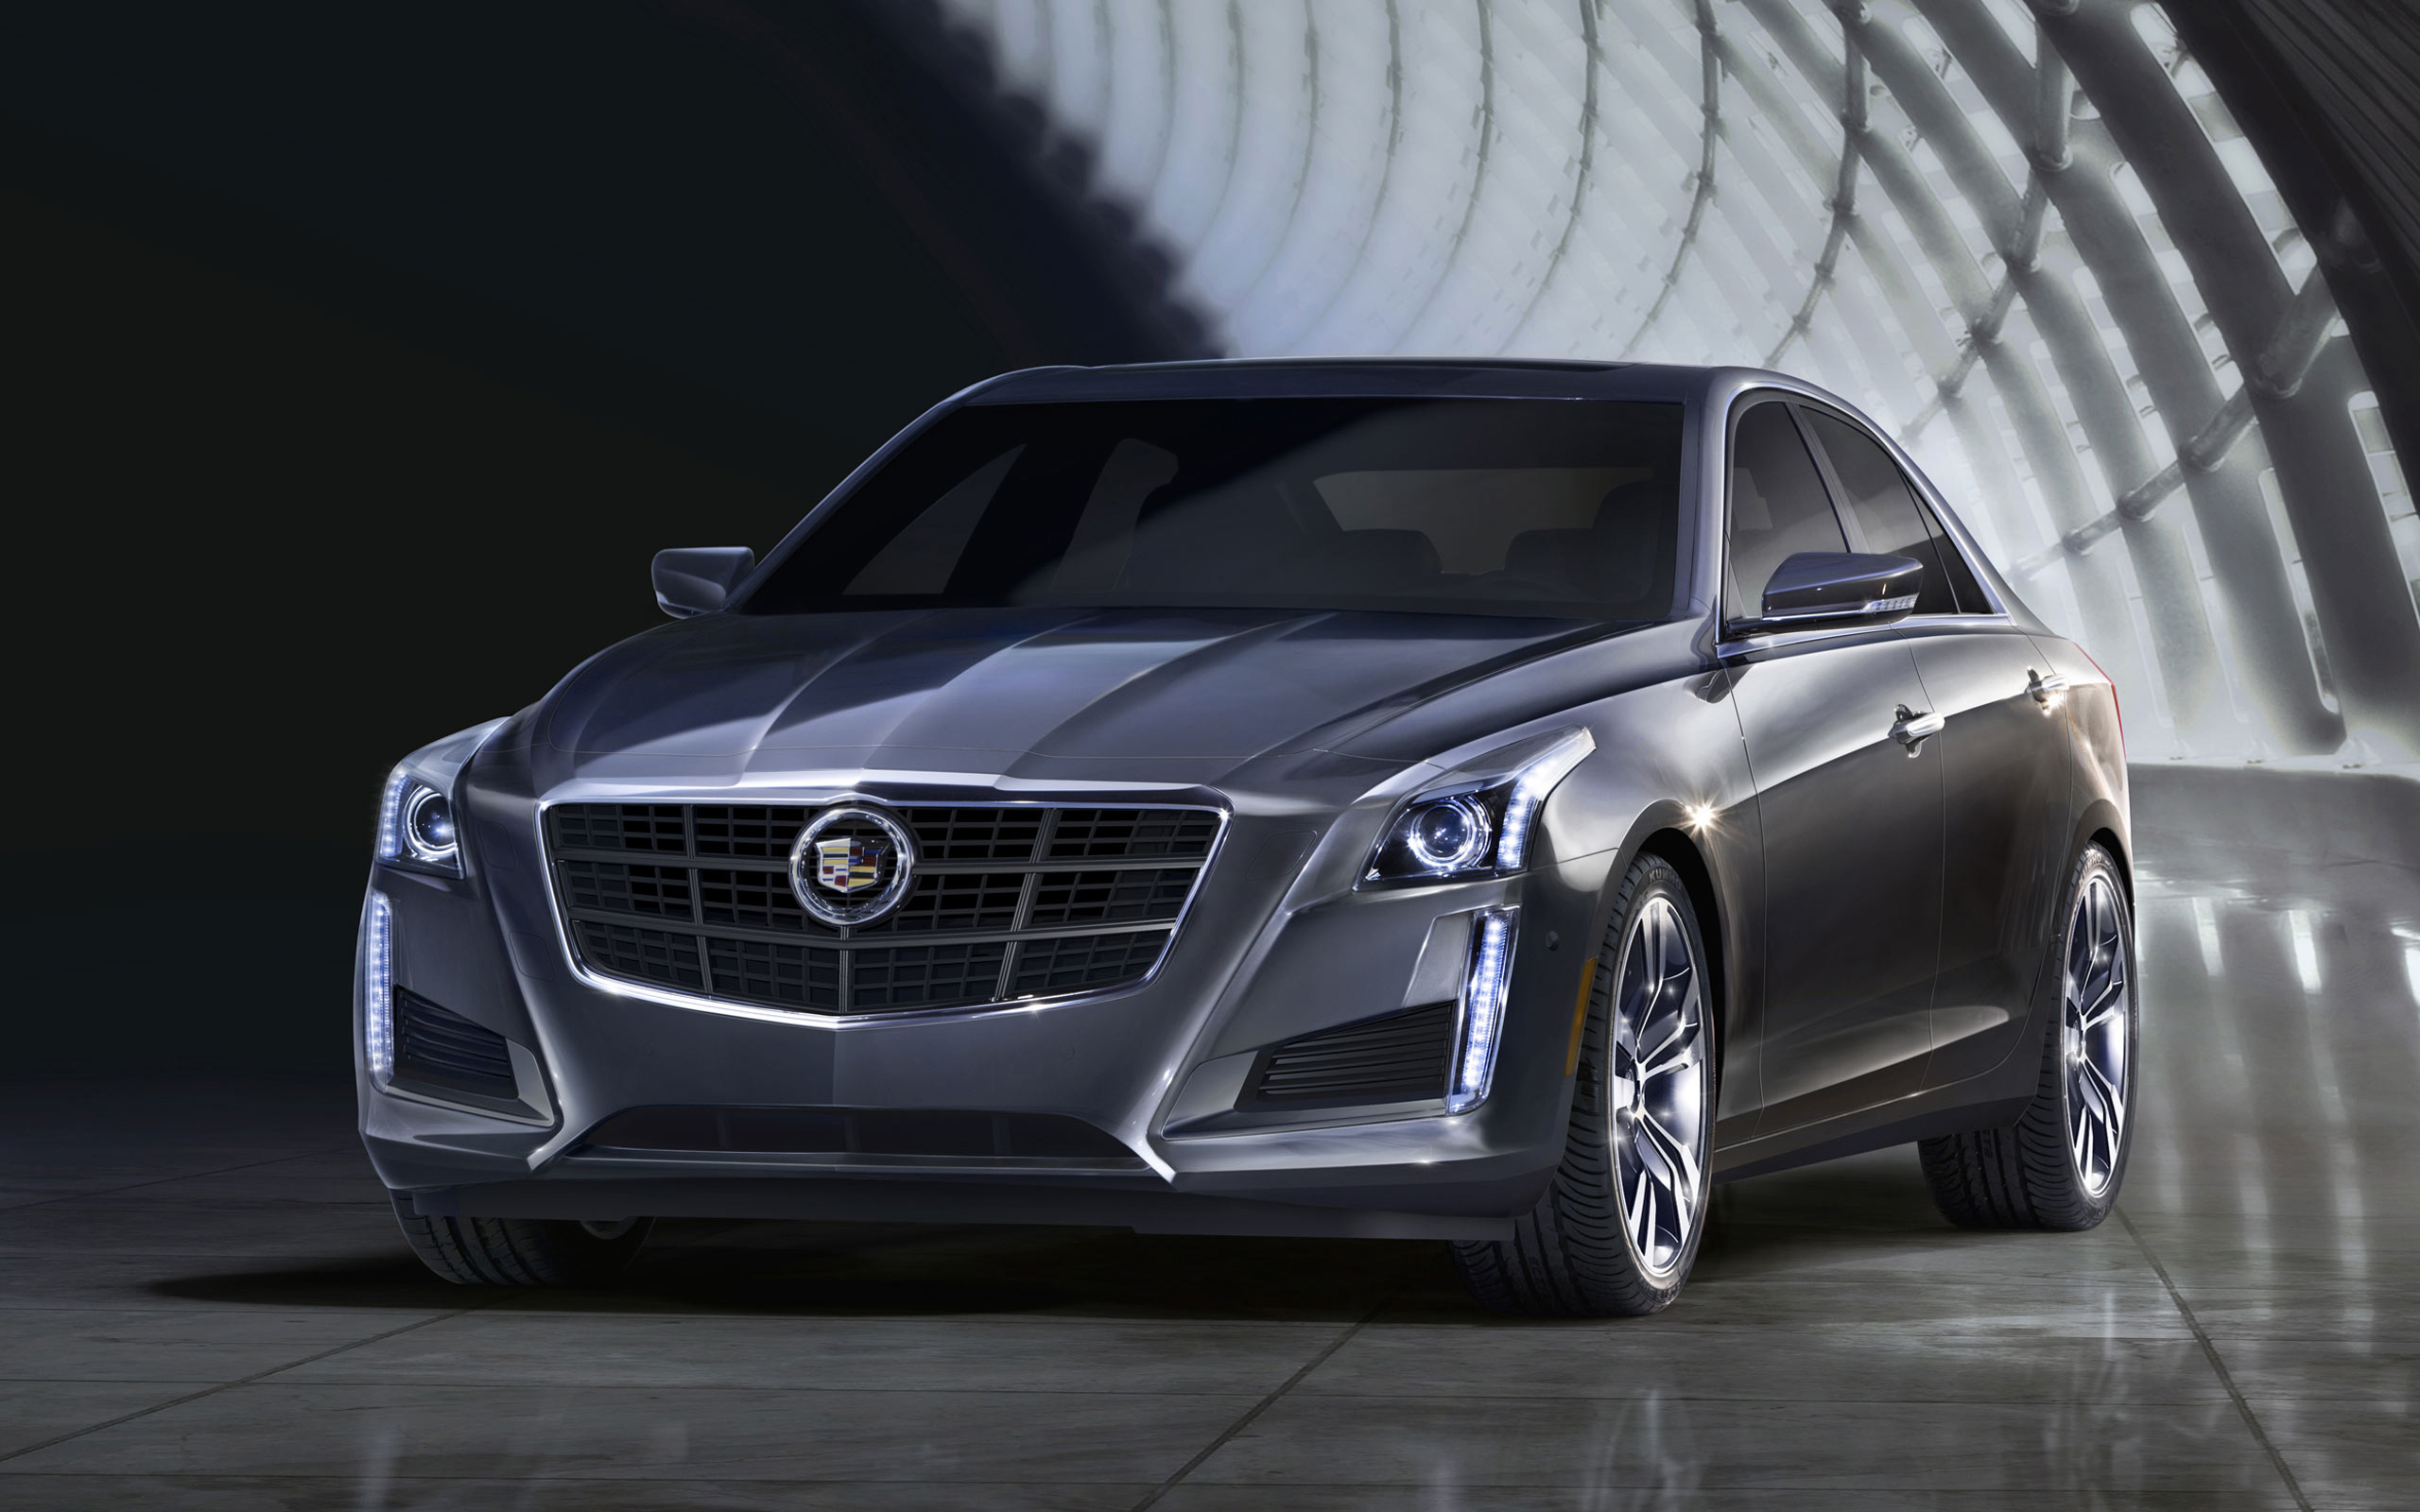 2014 cadillac cts wallpaper hd car wallpapers id 3344. Black Bedroom Furniture Sets. Home Design Ideas